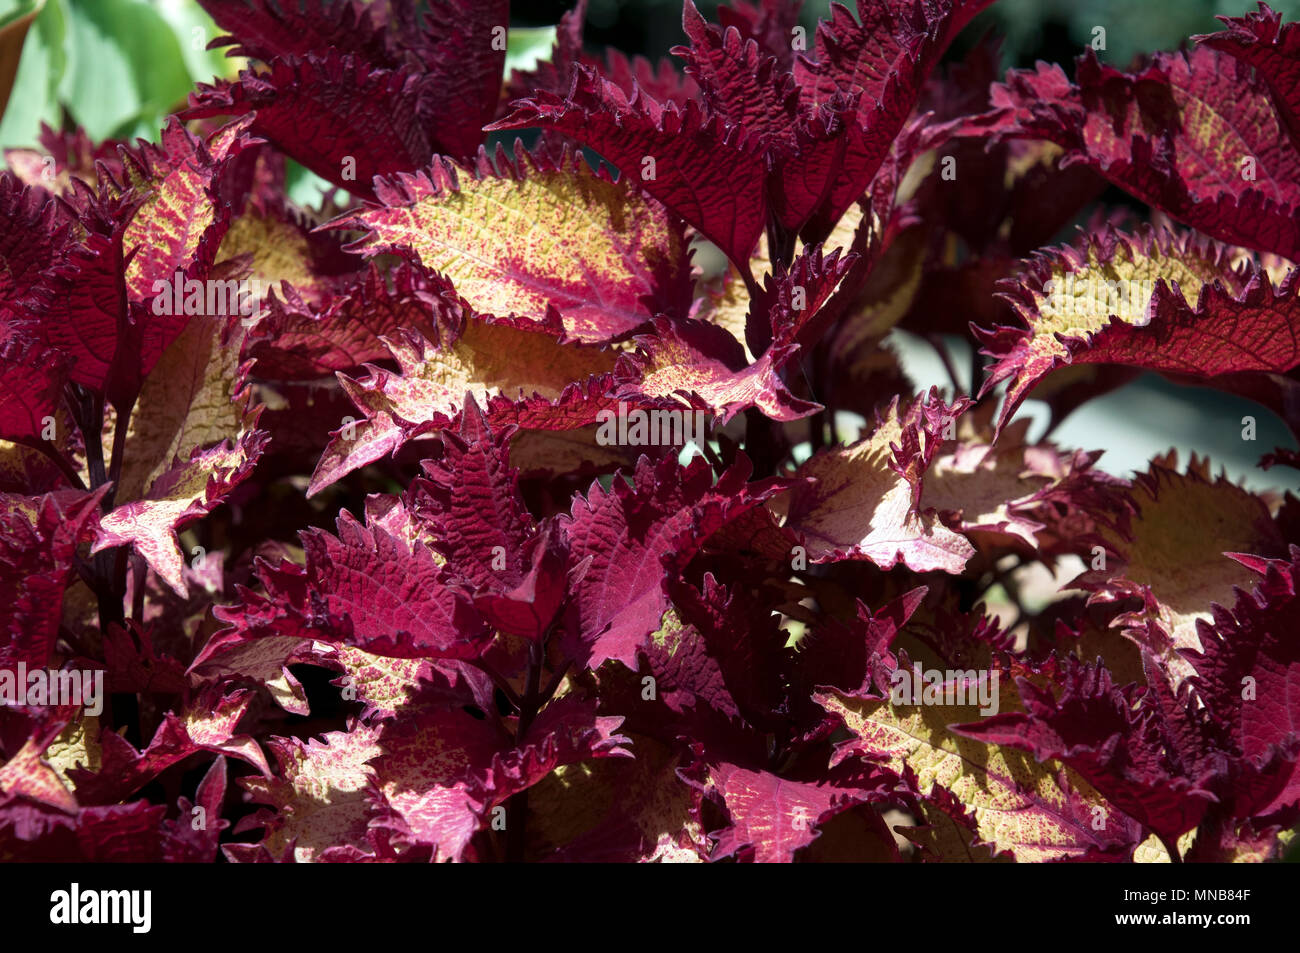 Sydney Australia, Variegated Coleus ornamental bush with two tone crimson and yellow leaves - Stock Image